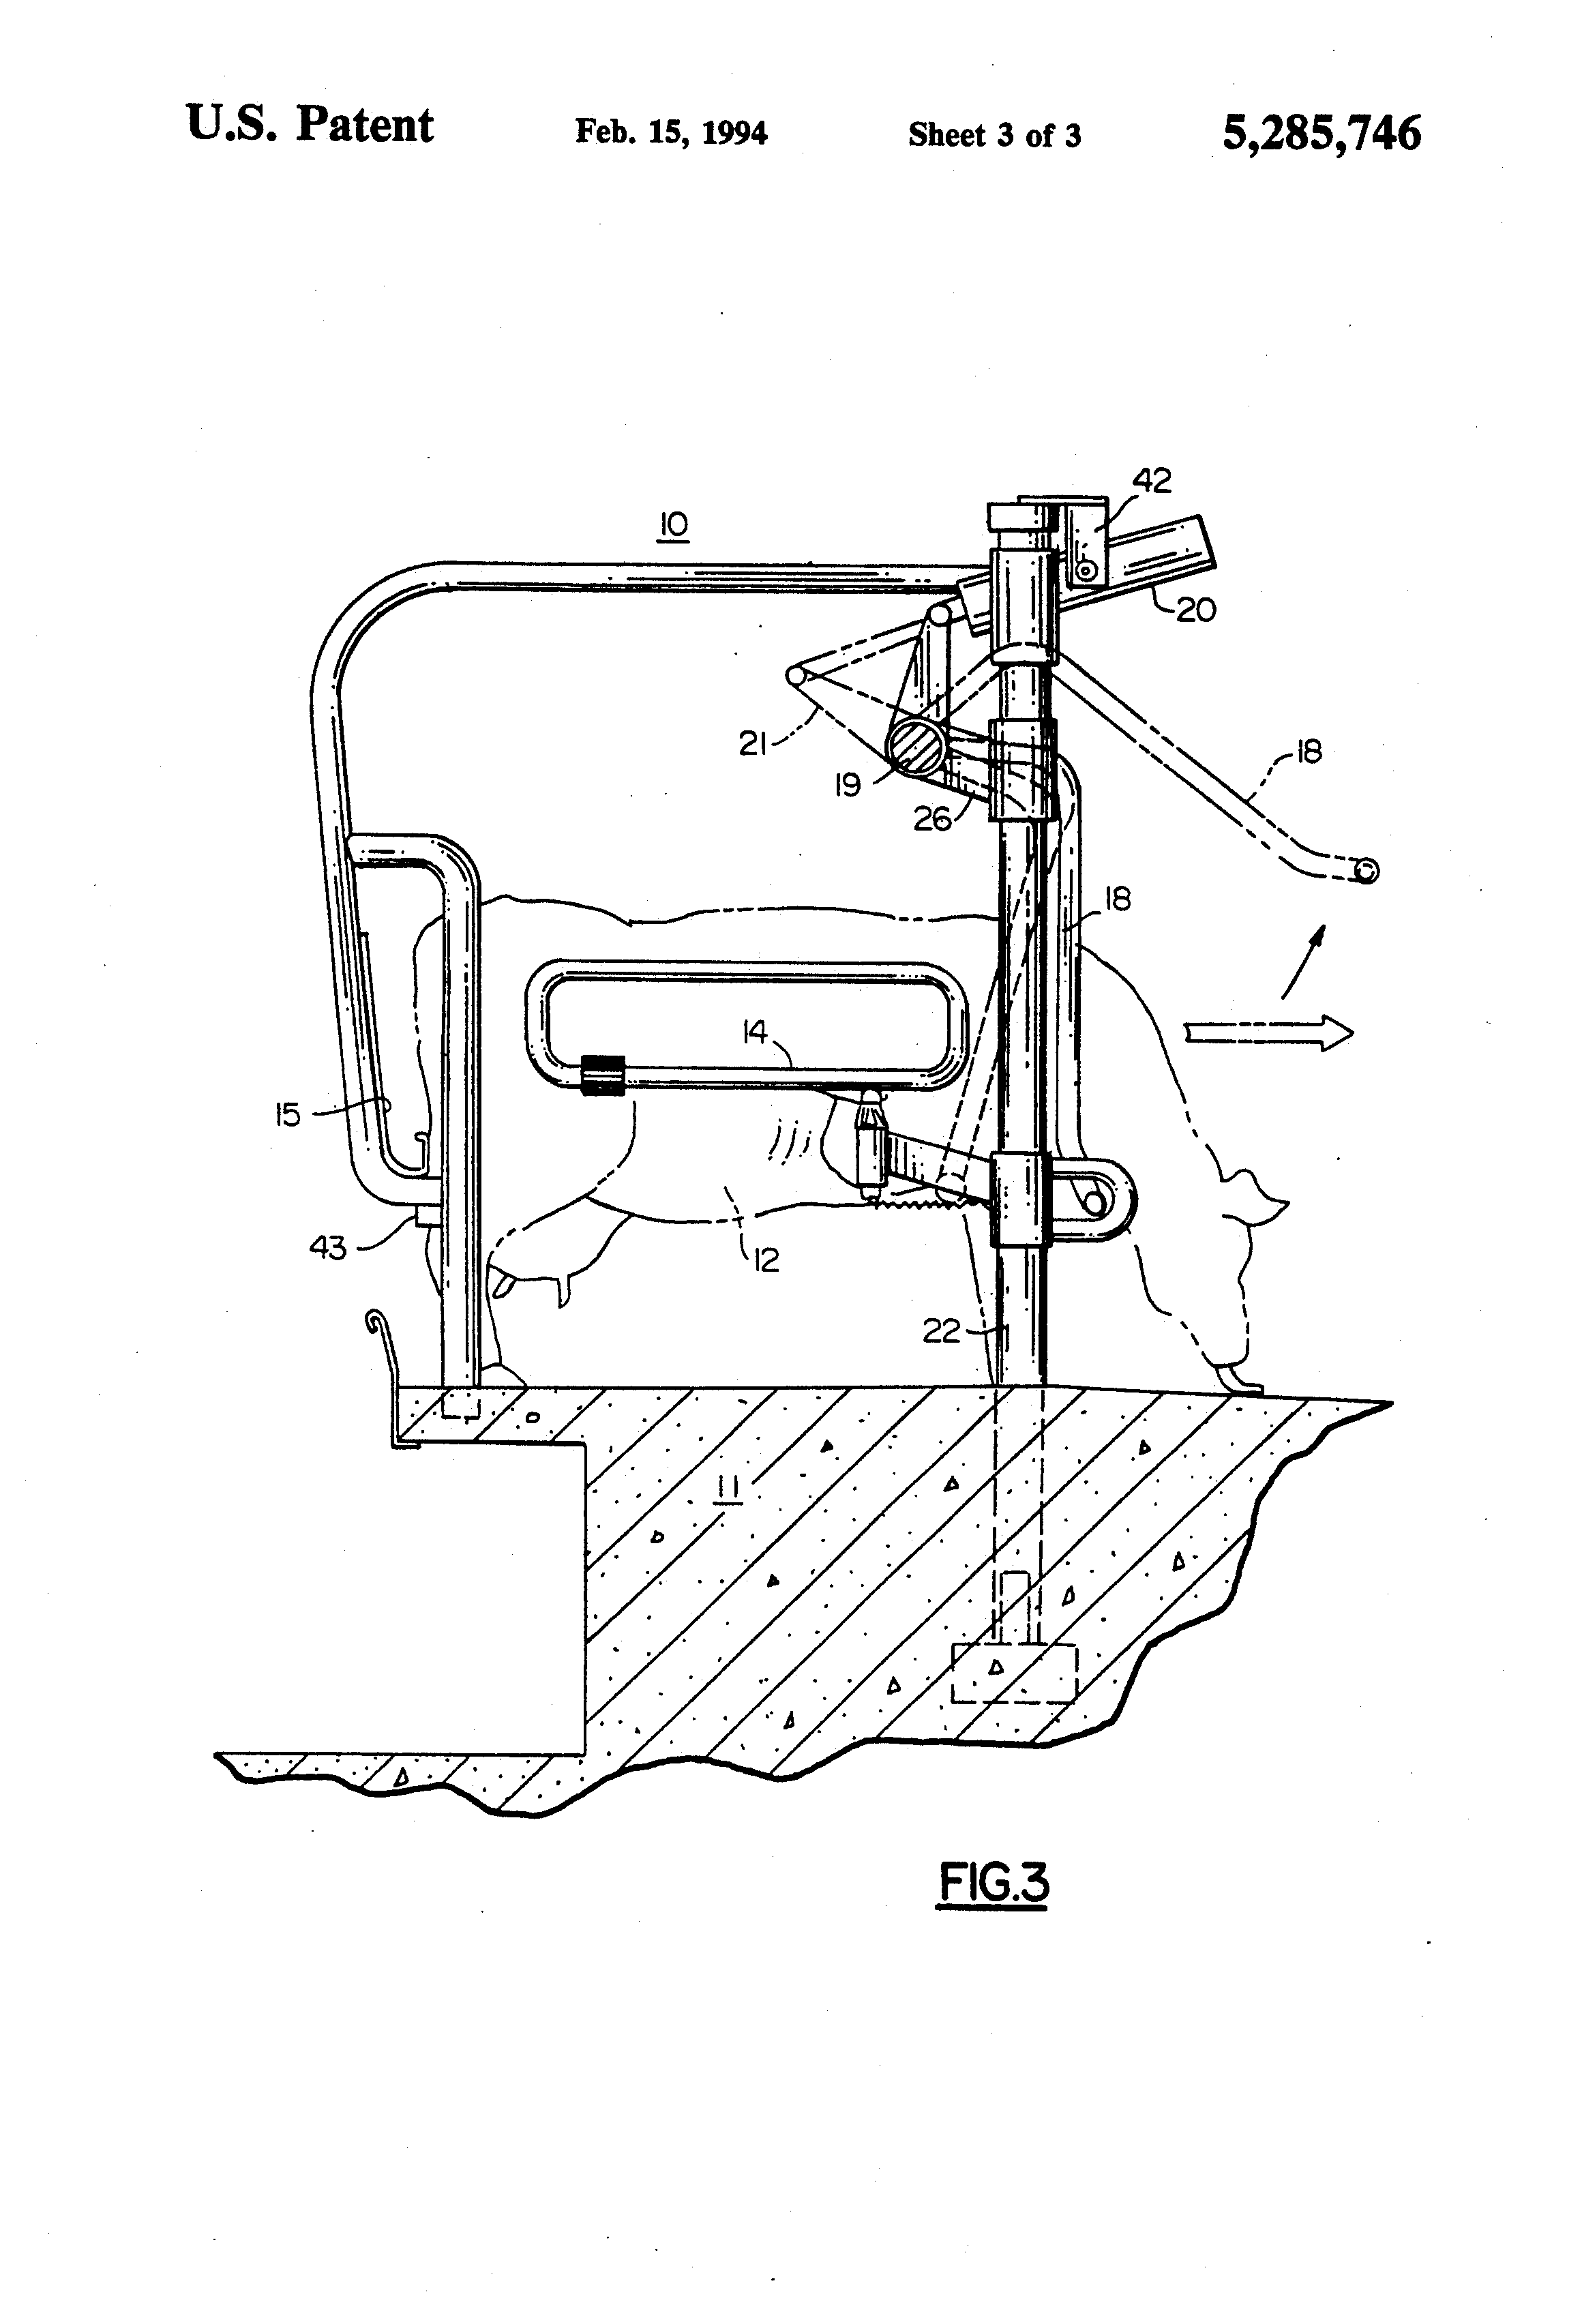 Lf 2404 Plow Wiring Diagram Together With Meyer Plow Light